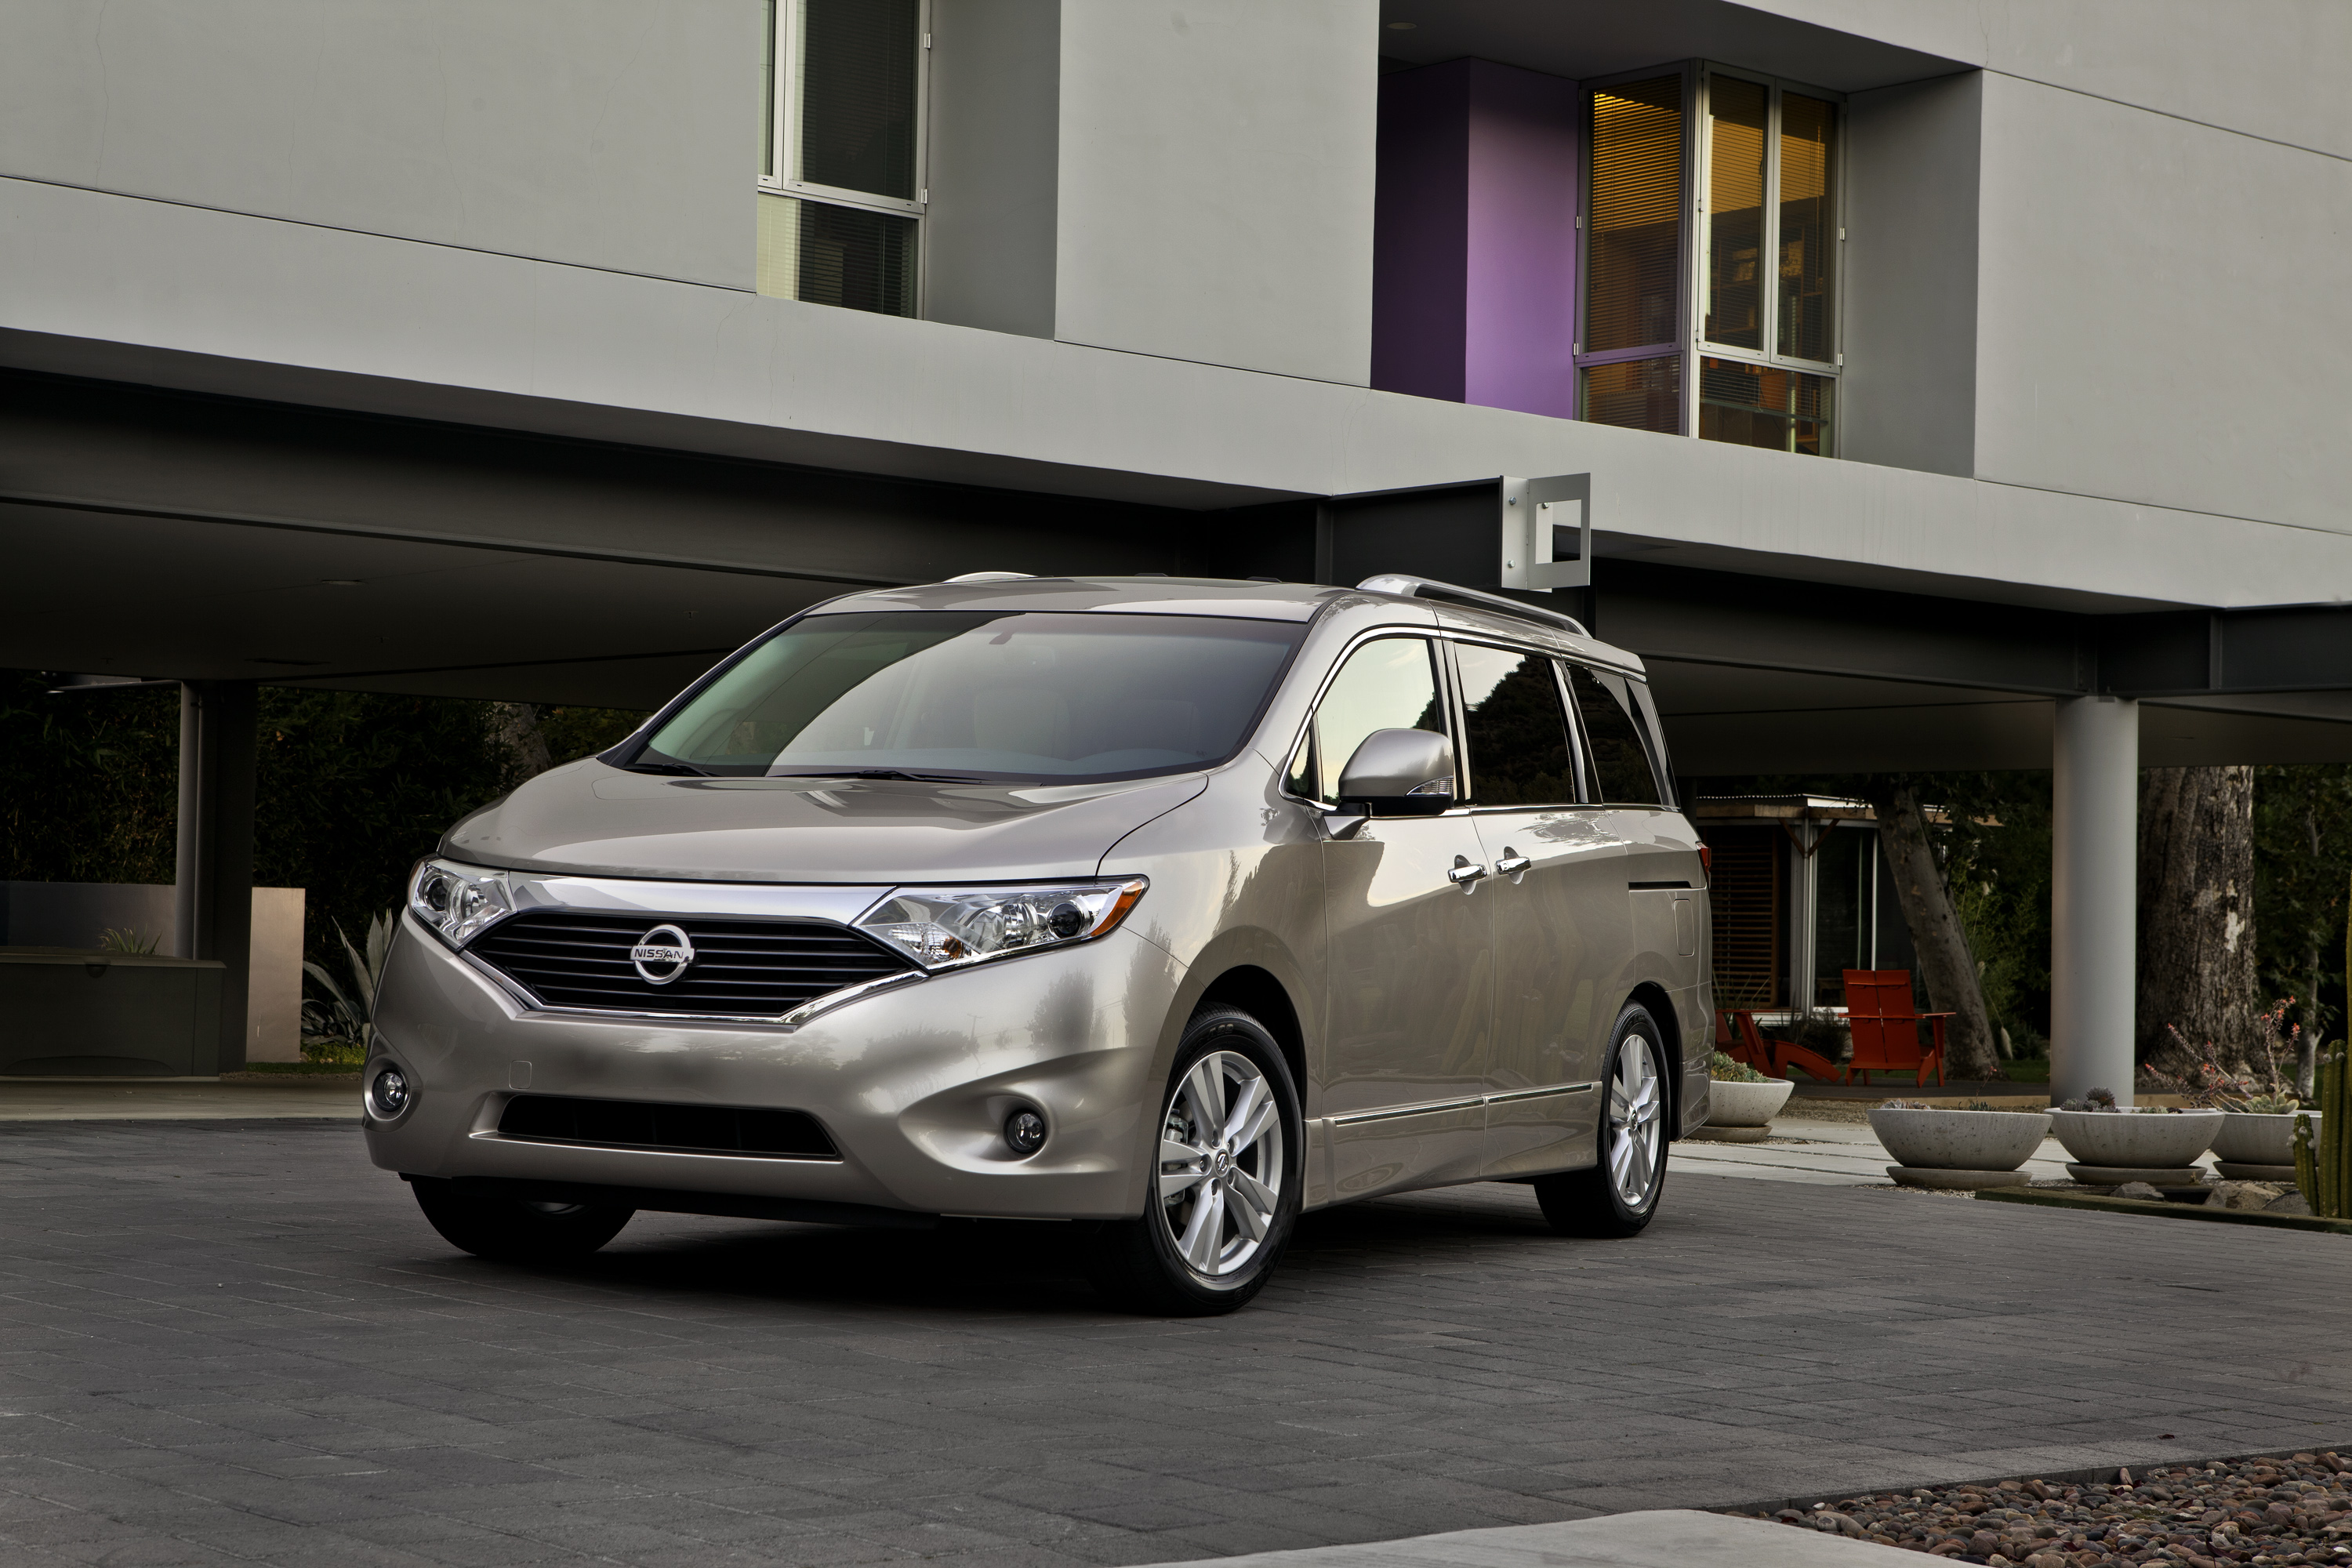 2014 Nissan Quest APEAL Study